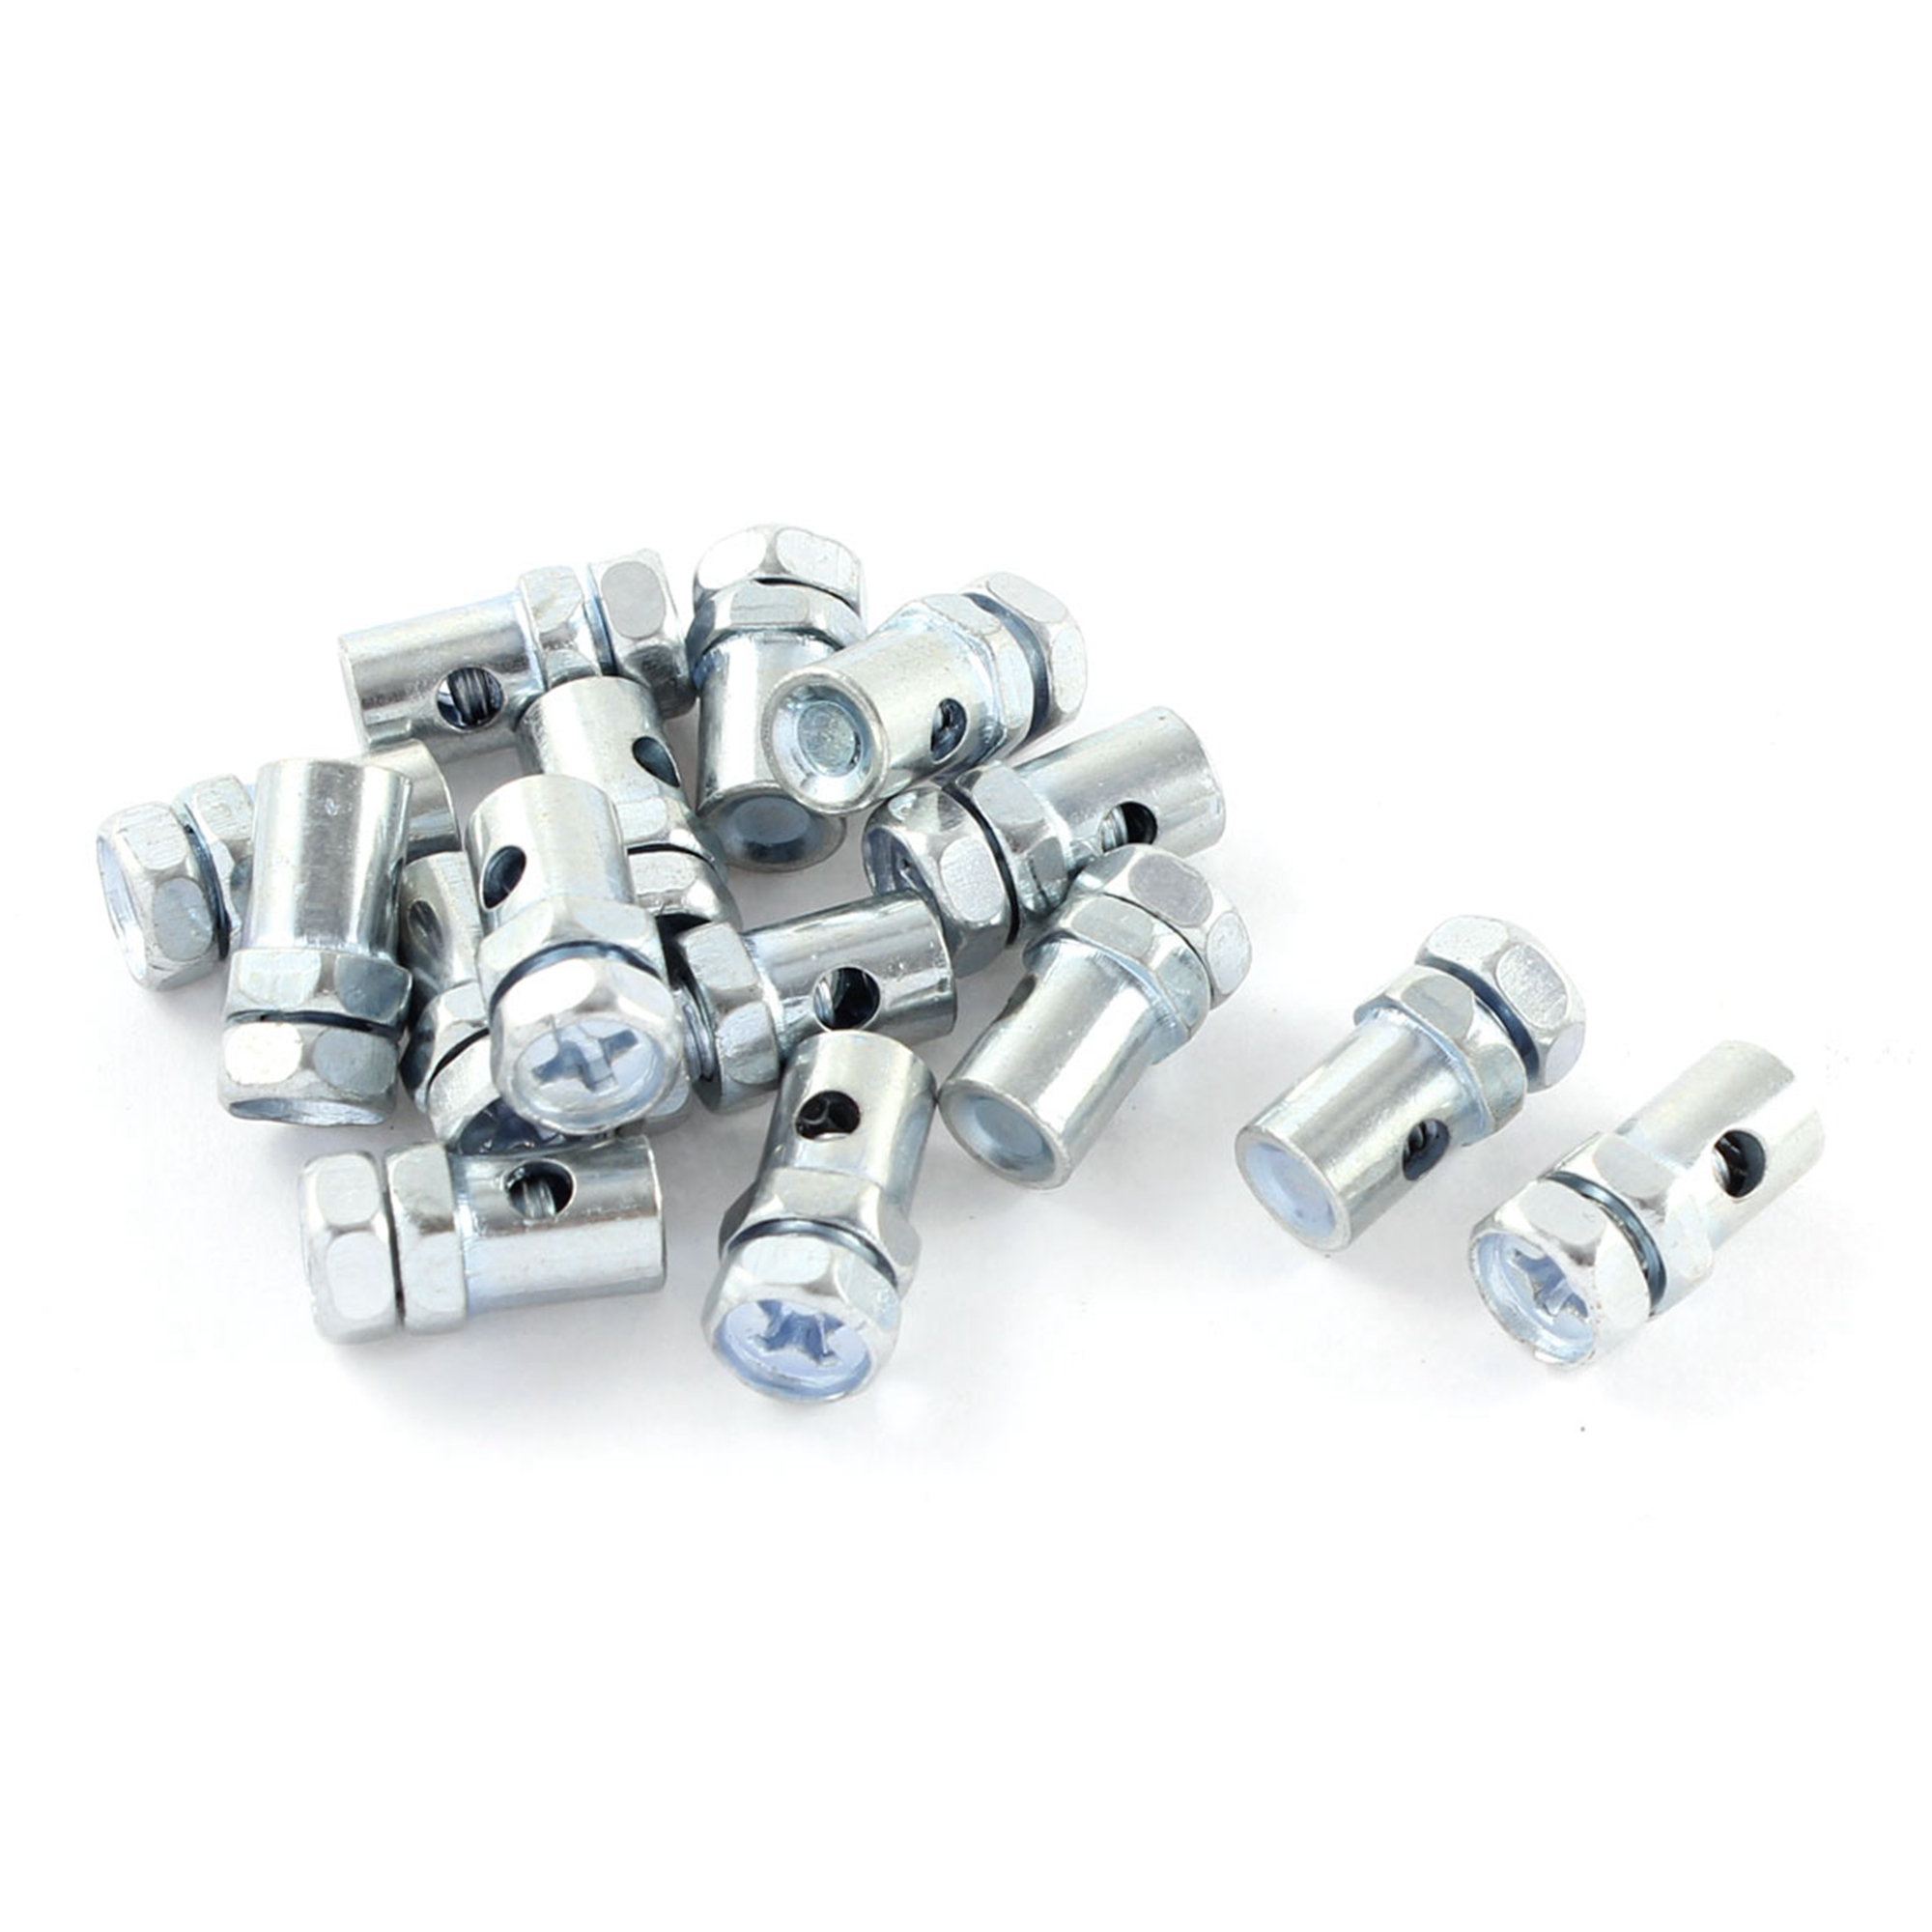 15 Pcs 2mm Solderless Nipple Phillips Head Screw Motorcycle Cable Bolts Top Fitting